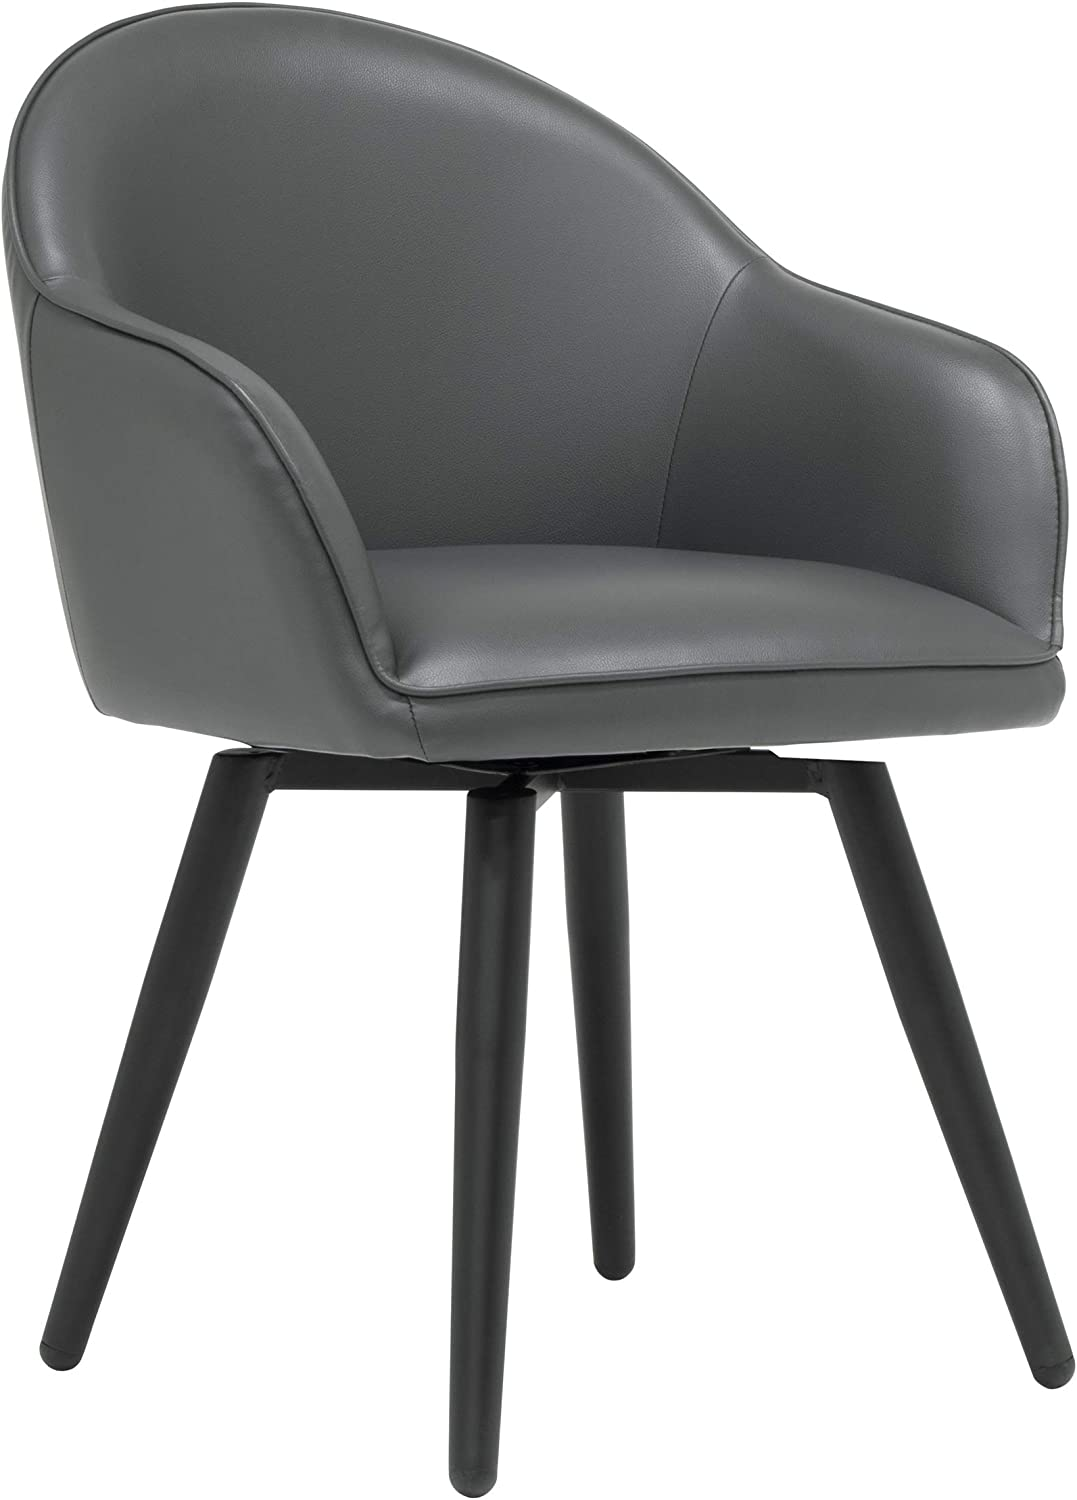 Studio Designs Home Dome Swivel Accent Chair with Arms, Office/Dining/Guest, Black/Smoke Grey Blended Leather